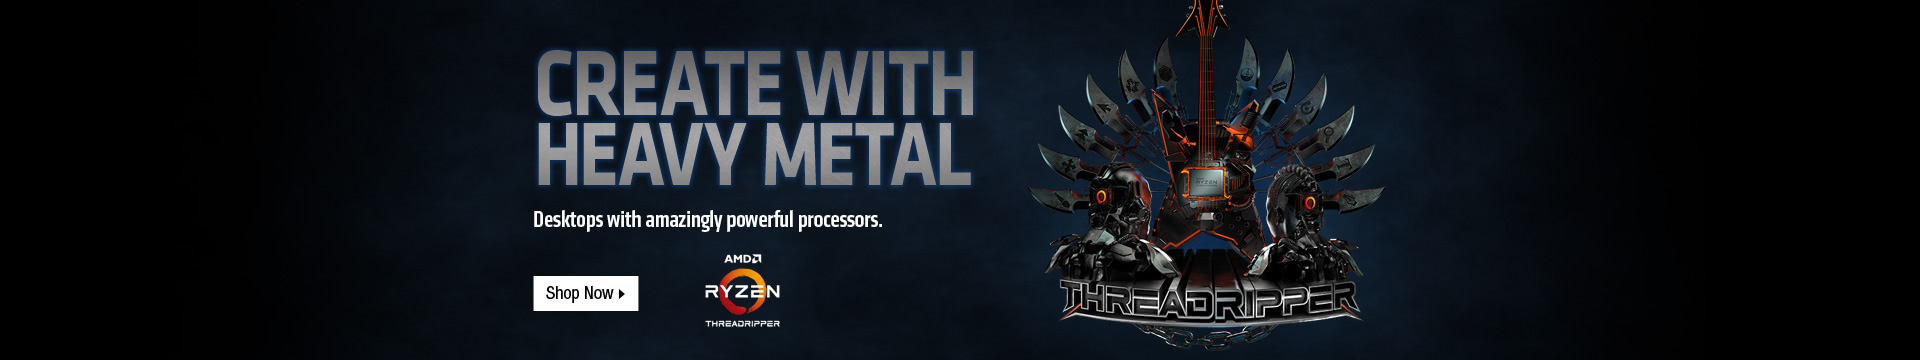 CREATE WITH HEAVY METAL